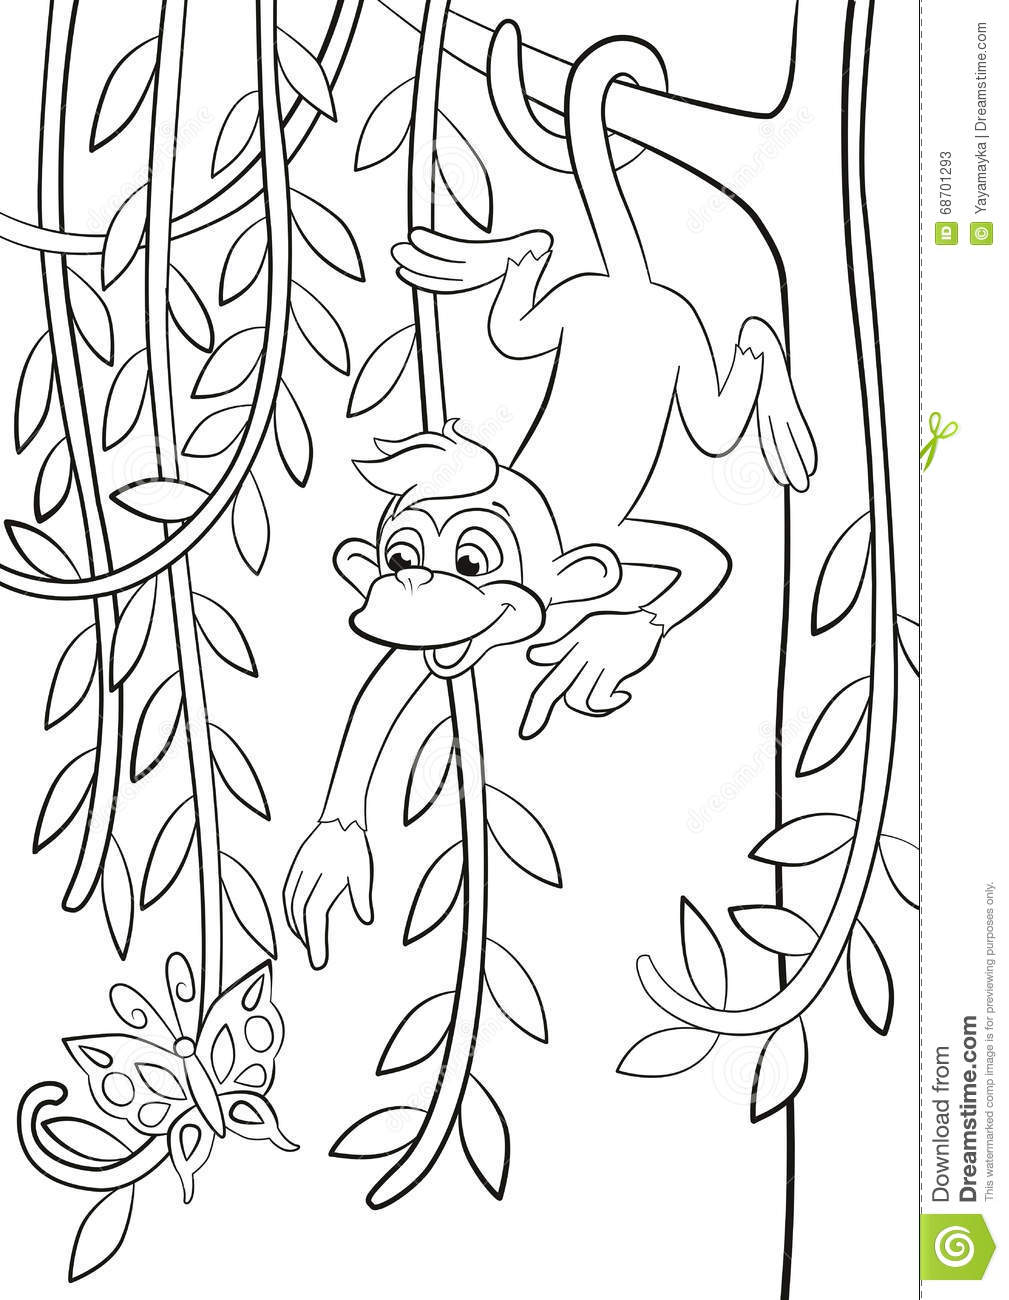 monkey in hanging on the tree branch. stock vector - image: 68701293 - Coloring Pages Monkeys Trees